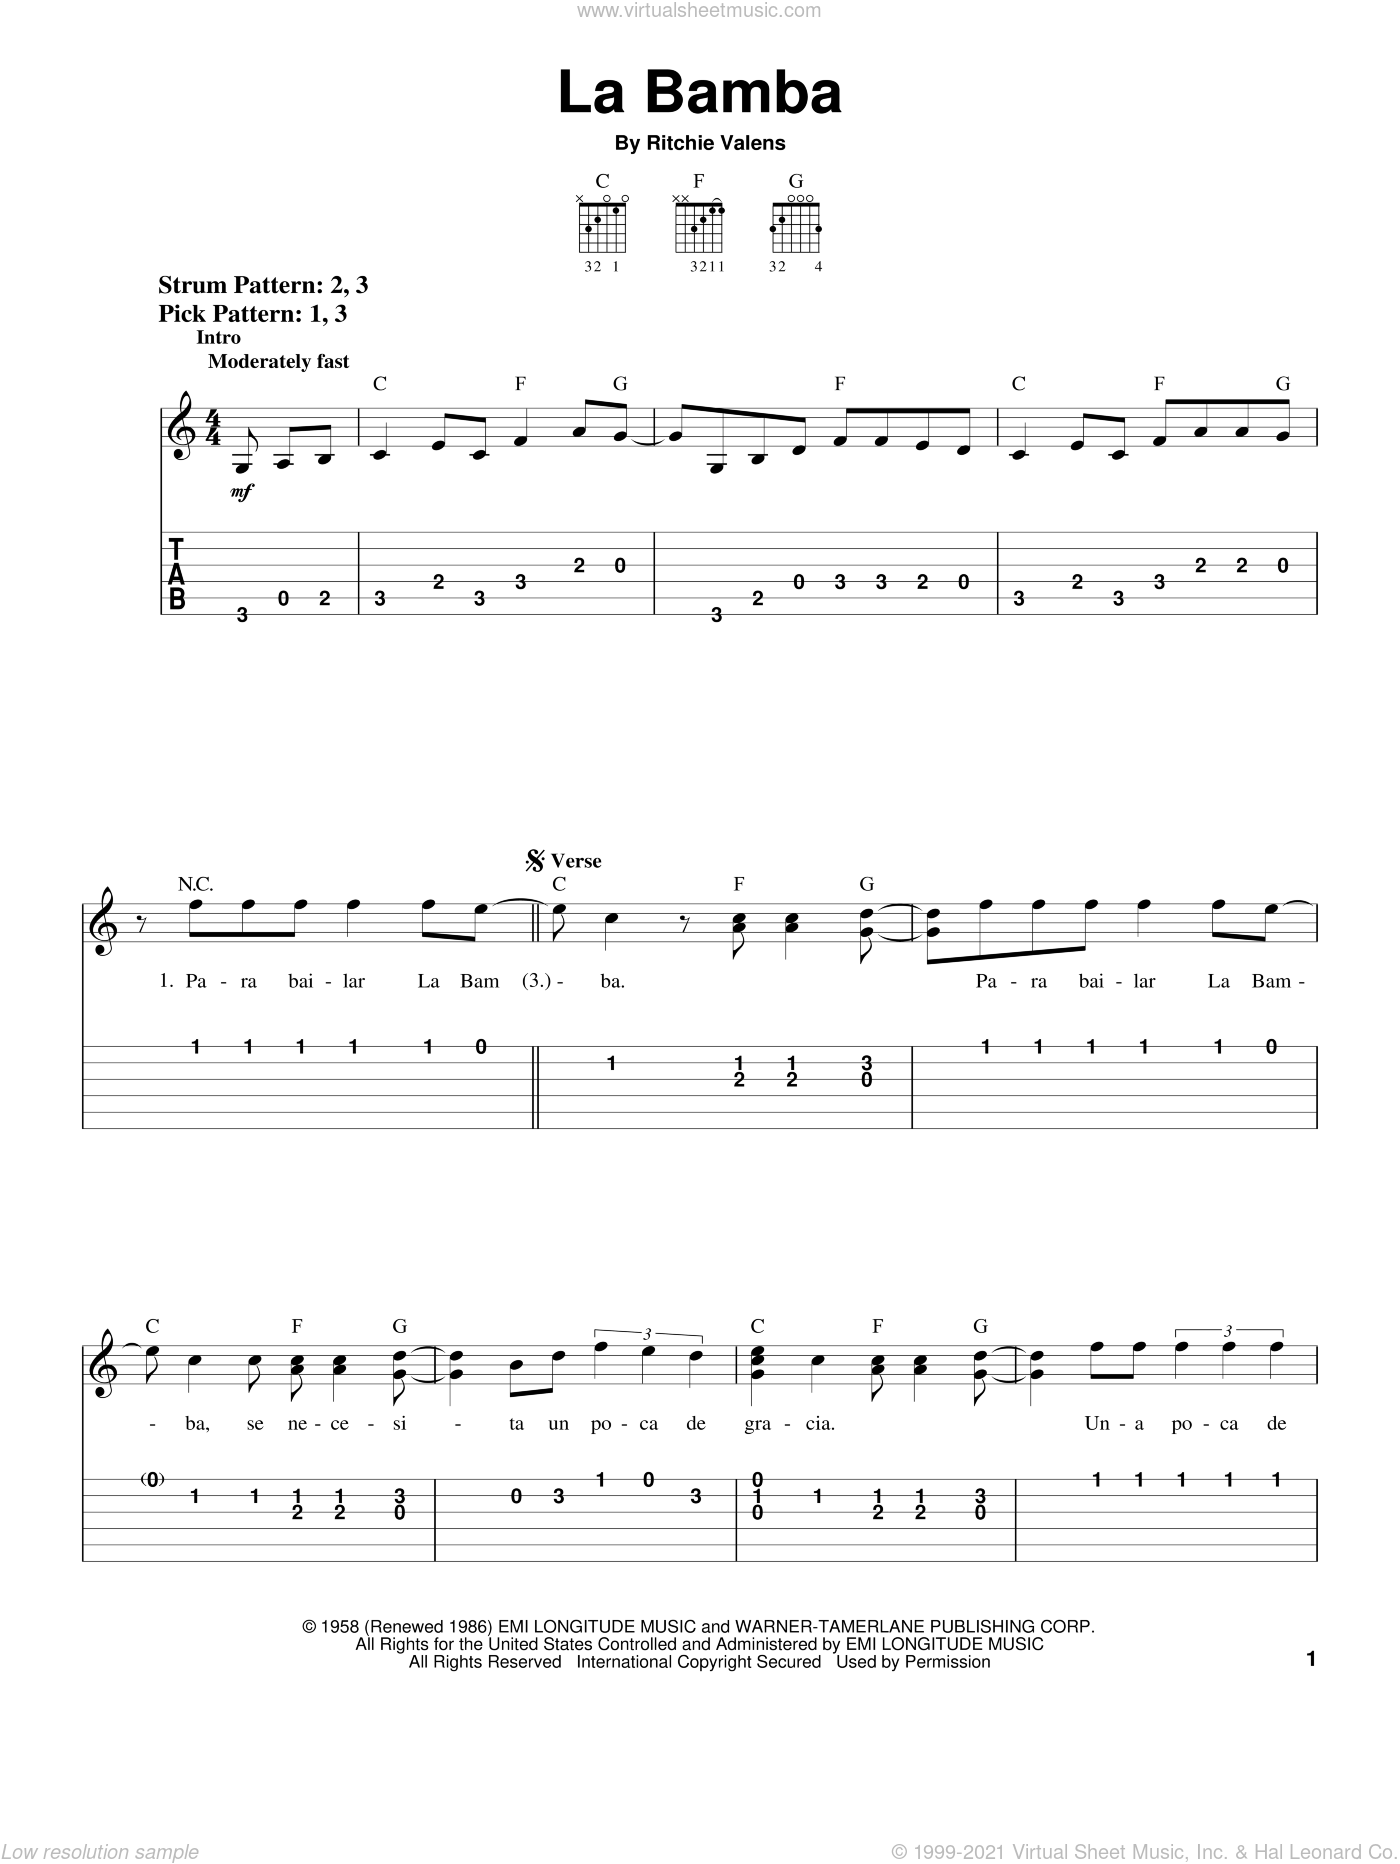 La Bamba sheet music for guitar solo (chords) by Ritchie Valens